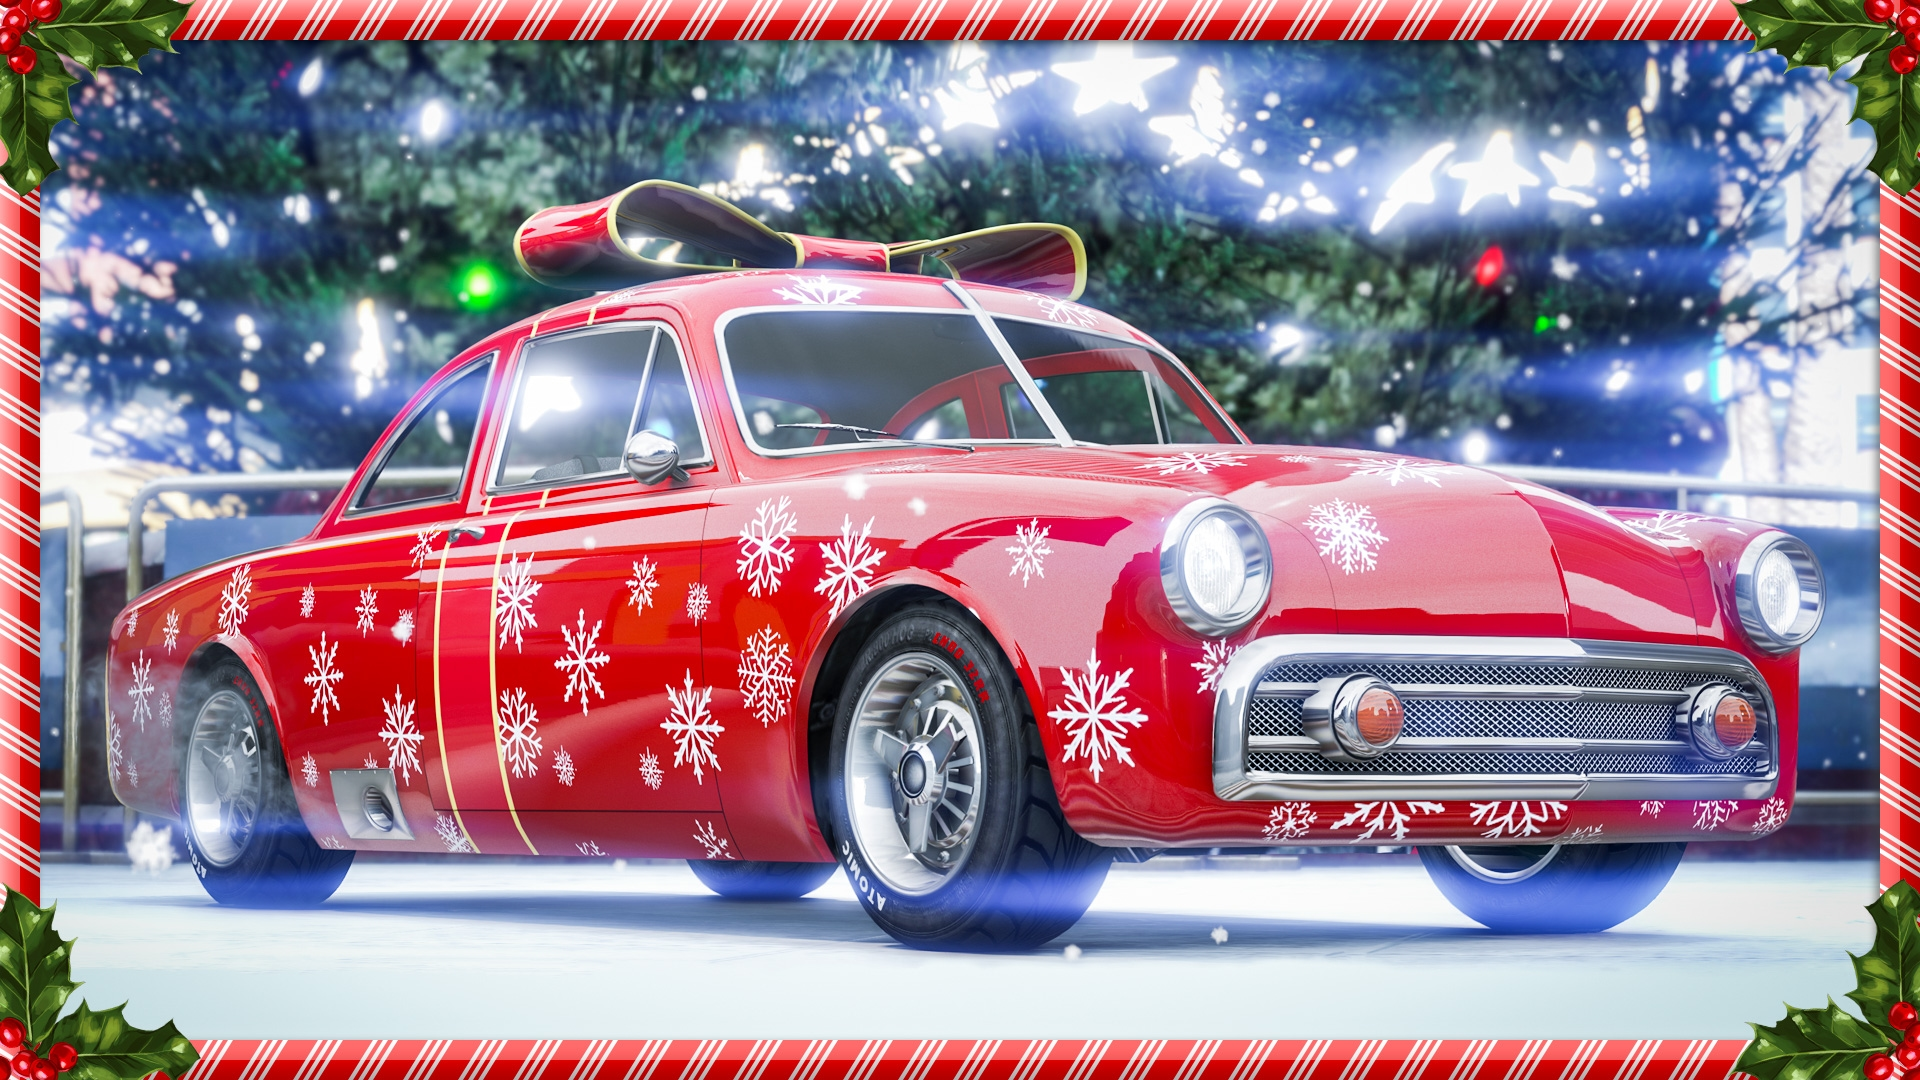 Festive Surprise 2018 In Gta Online Rockstar Games